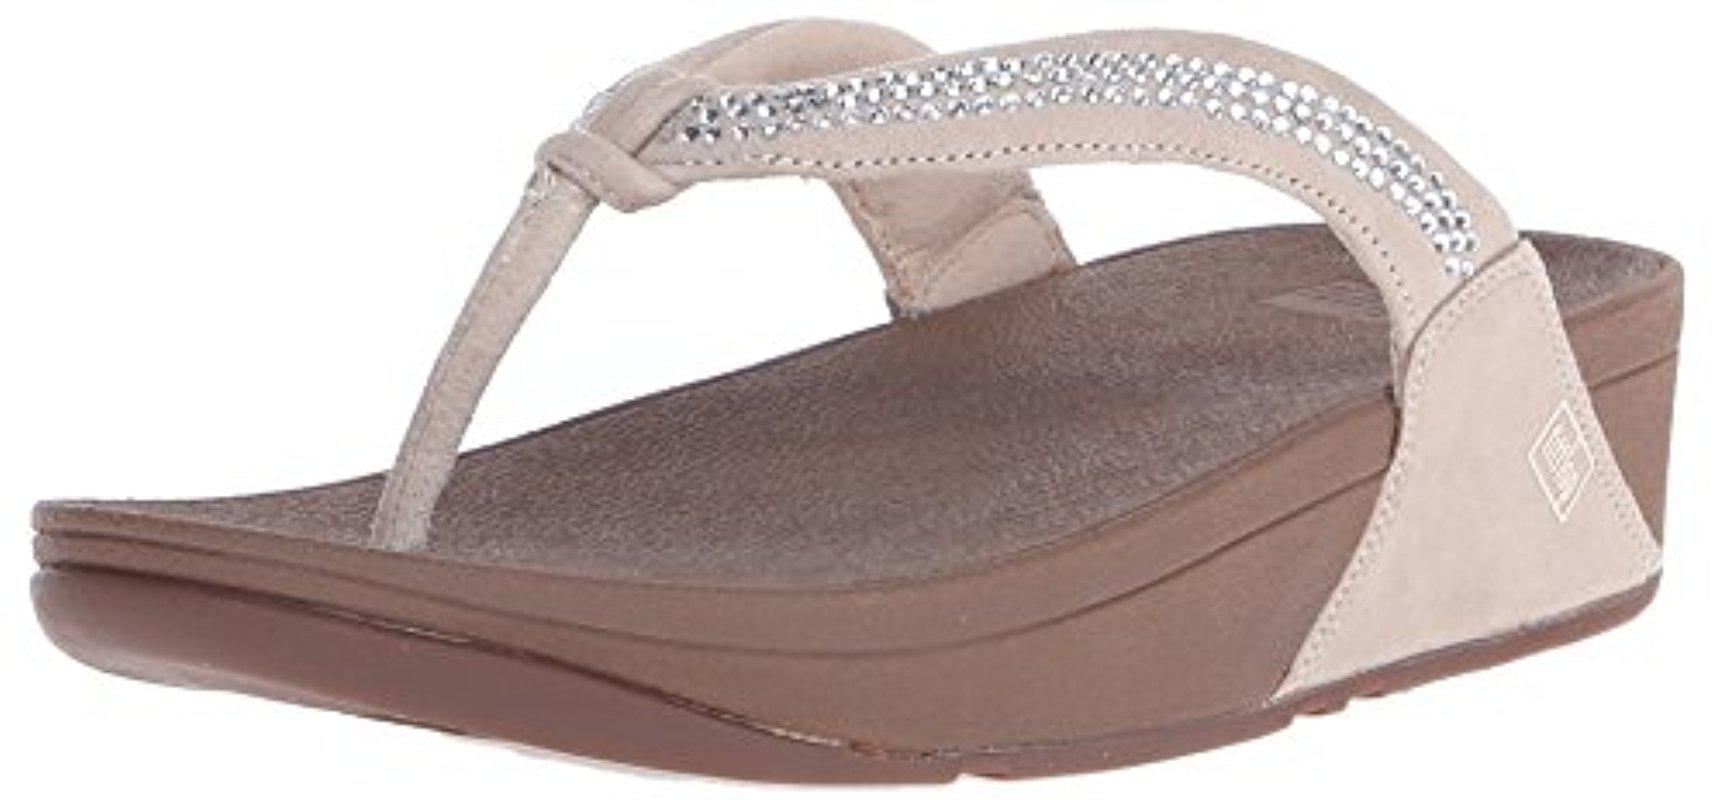 4c44e03b0700 Lyst - Fitflop Crystal Swirl Flip-flop in Brown - Save 31.0%